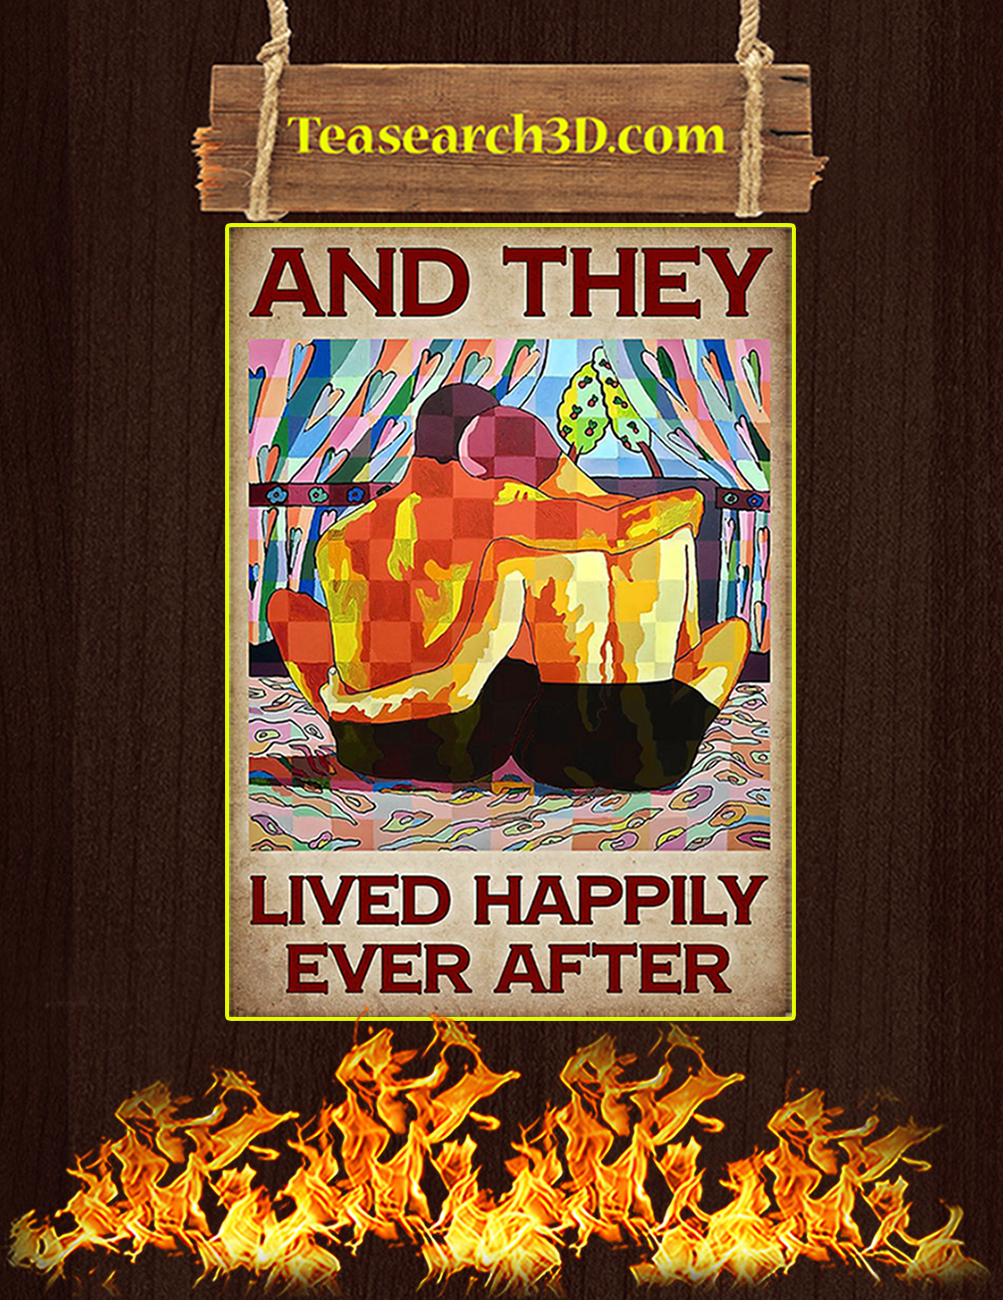 LGBT and they lived happily ever after poster